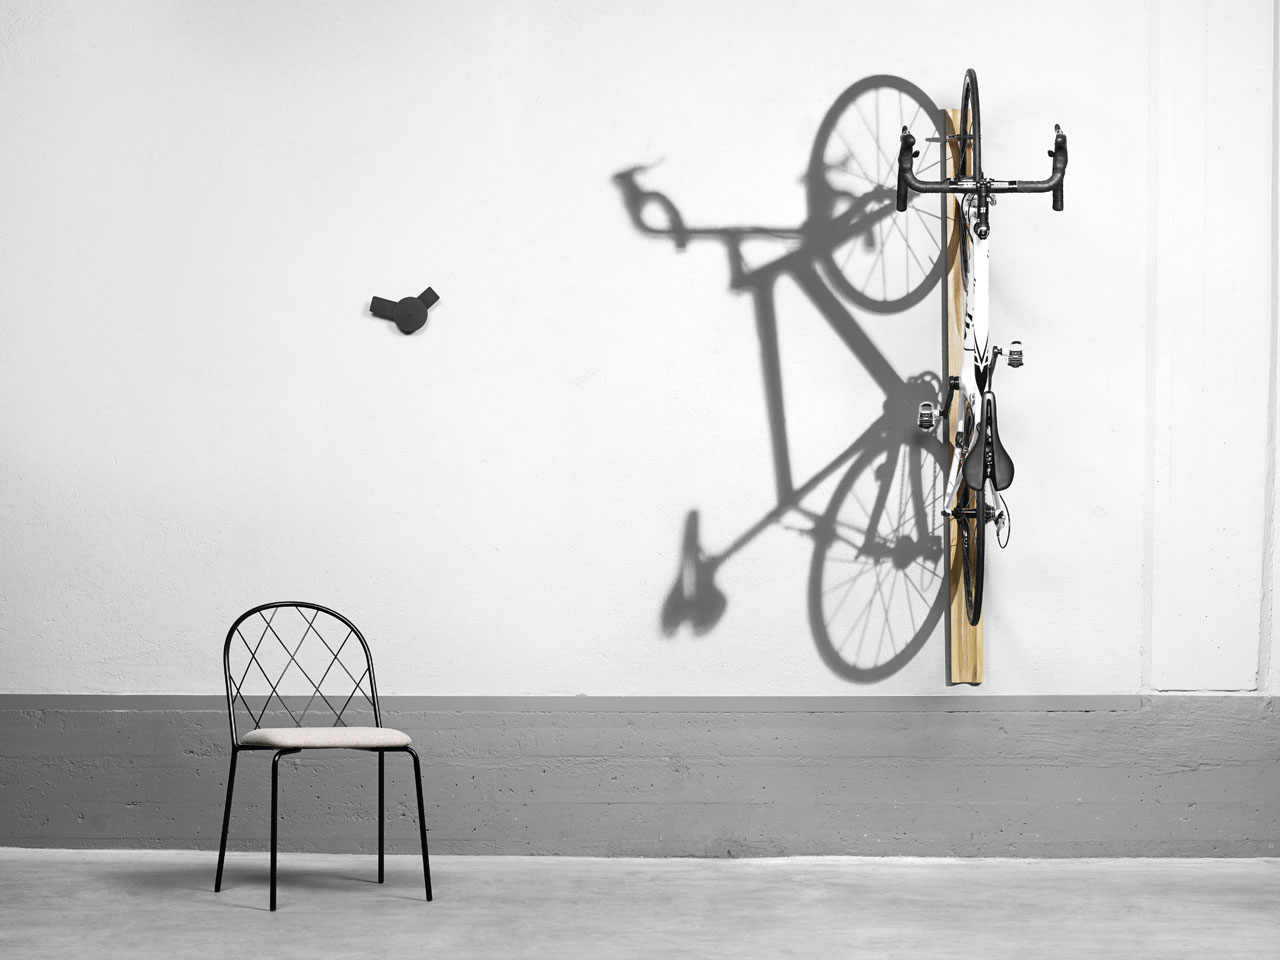 Mesh chair by Lars Hofsjö, O´clock  wall clock by Louise Hederström and Giro wall-mounted cycle rack by Mattias Stenberg for David Design.